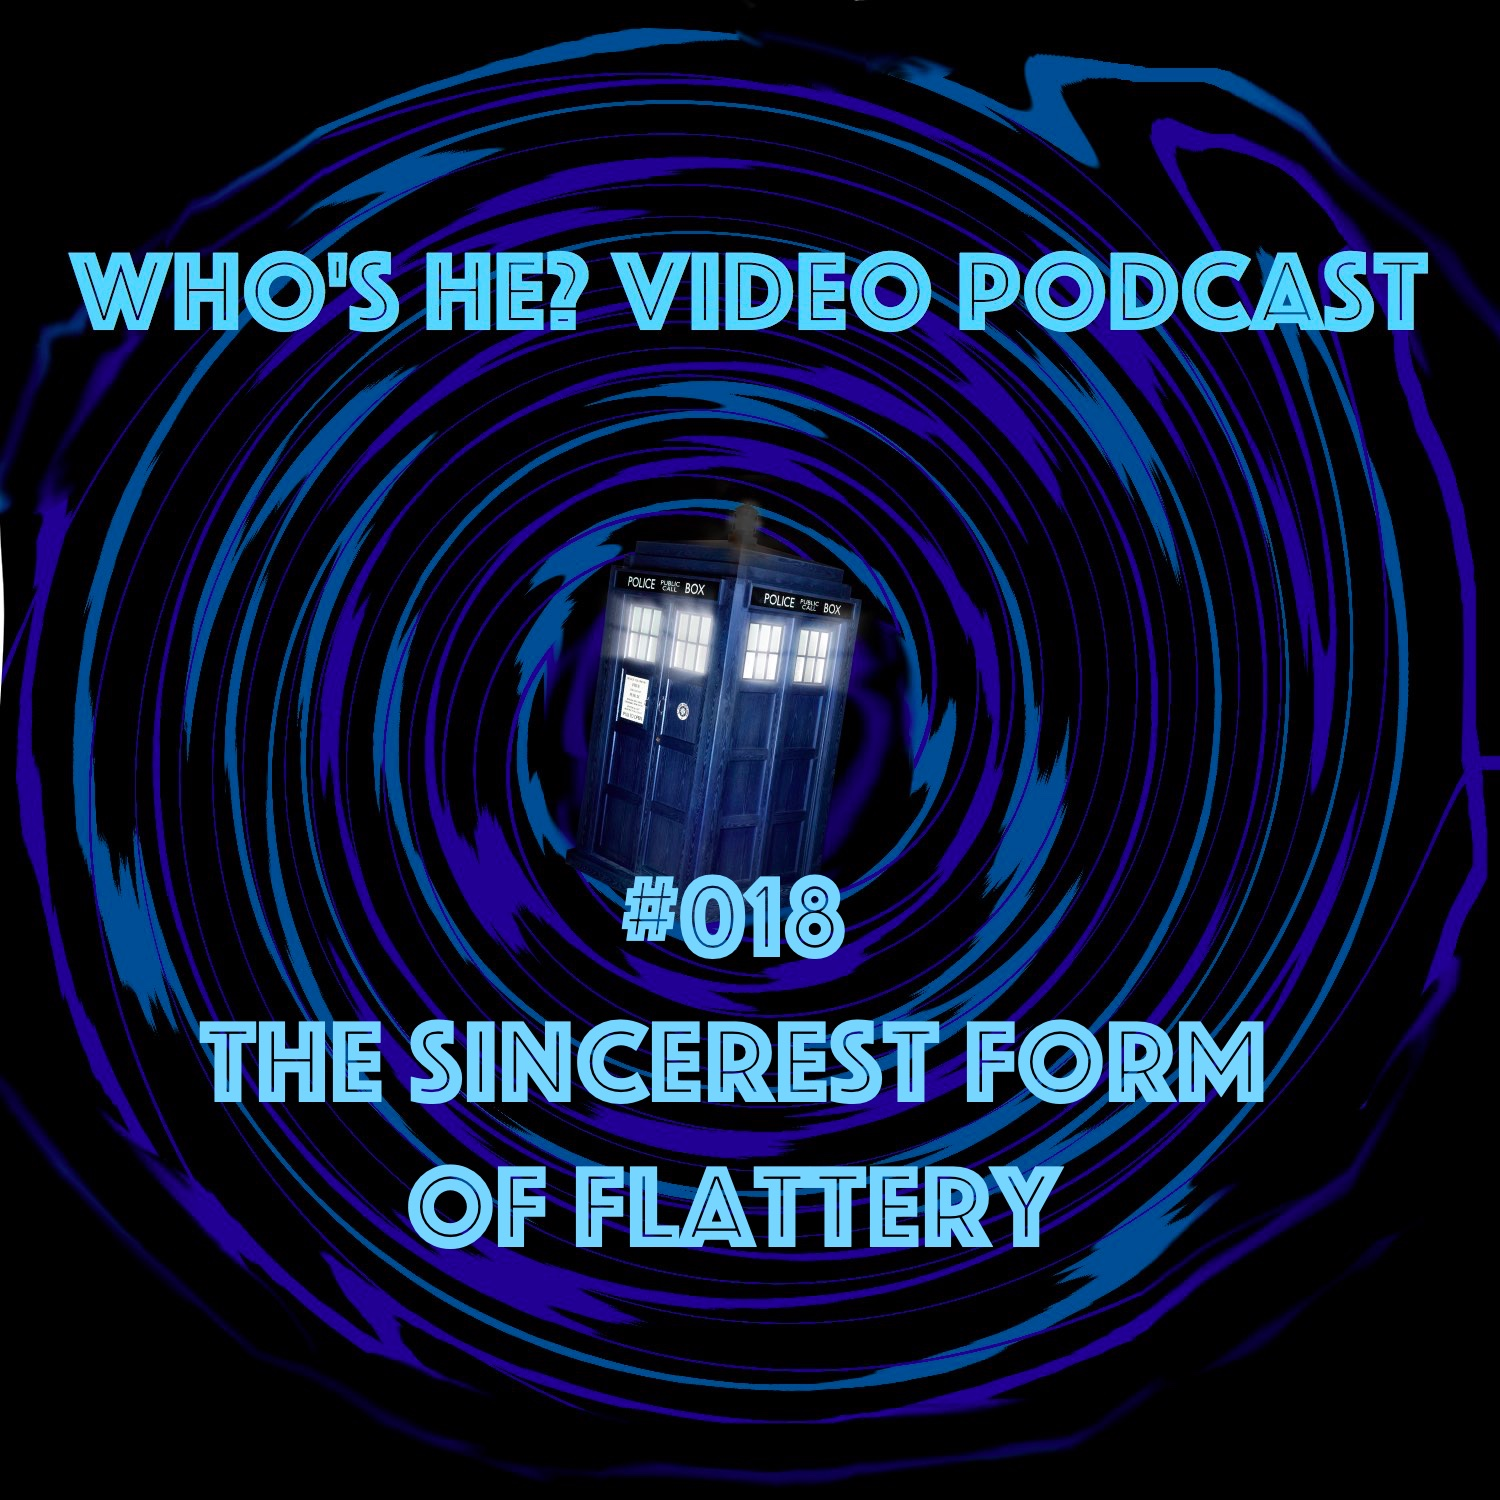 Artwork for Doctor Who: Who's He? Video Podcast #018 The sincerest form of flattery